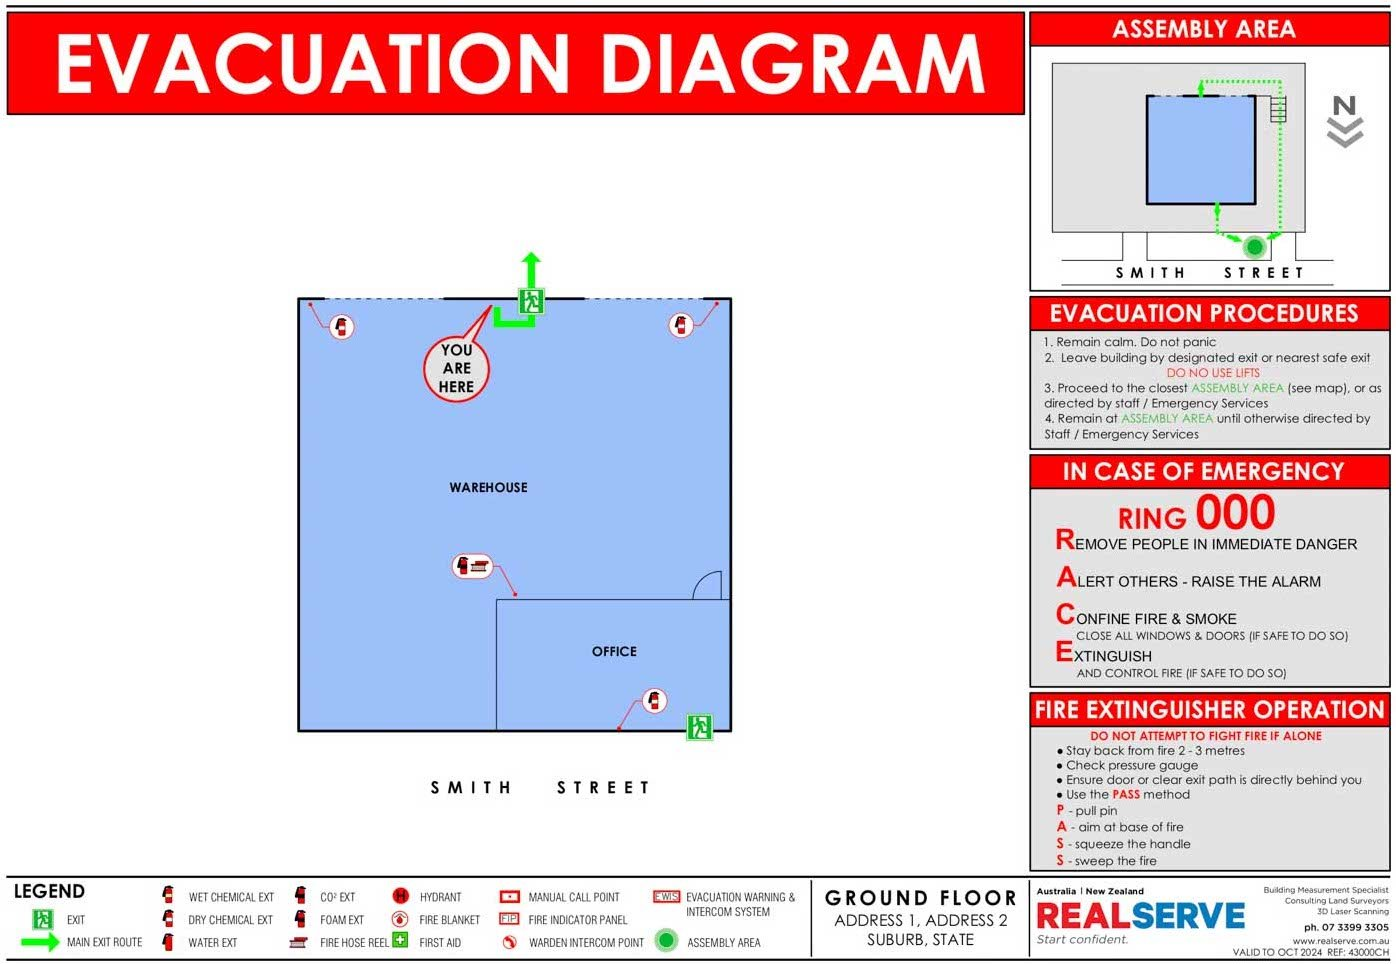 REALSERVE EVACUATION PLAN SAMPLE OF WAREHOUSE BUILDING